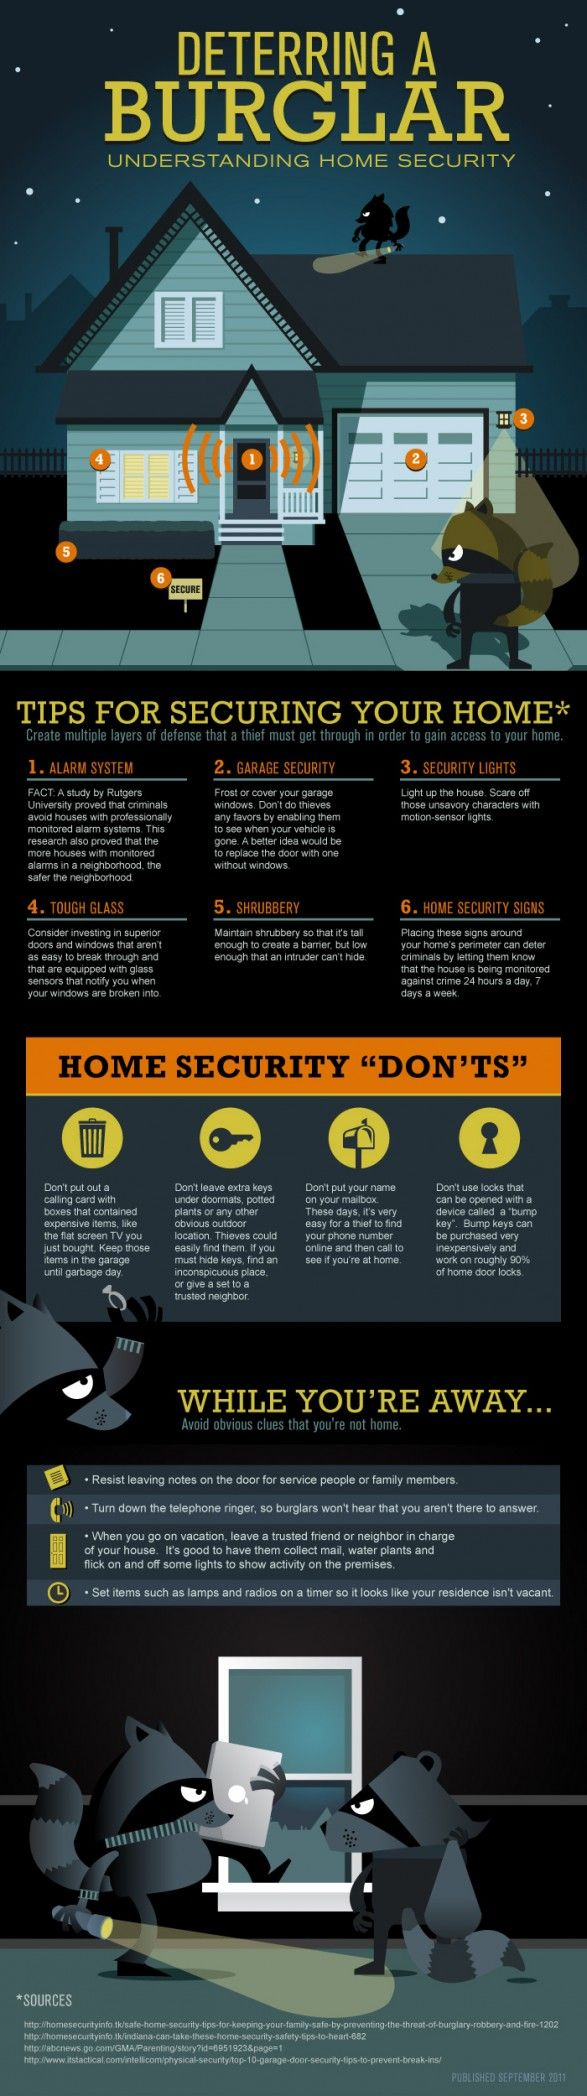 home security tips #Safe #Security - wwww.homecontrols.comwww.pyrotherm.gr FIRE PROTECTION ΠΥΡΟΣΒΕΣΤΙΚΑ 36 ΧΡΟΝΙΑ ΠΥΡΟΣΒΕΣΤΙΚΑ 36 YEARS IN FIRE PROTECTION FIRE - SECURITY ENGINEERS & CONTRACTORS REFILLING - SERVICE - SALE OF FIRE EXTINGUISHERS www.pyrotherm.gr www.pyrosvestika.com www.fireextinguis... www.pyrosvestires.eu www.pyrosvestires...